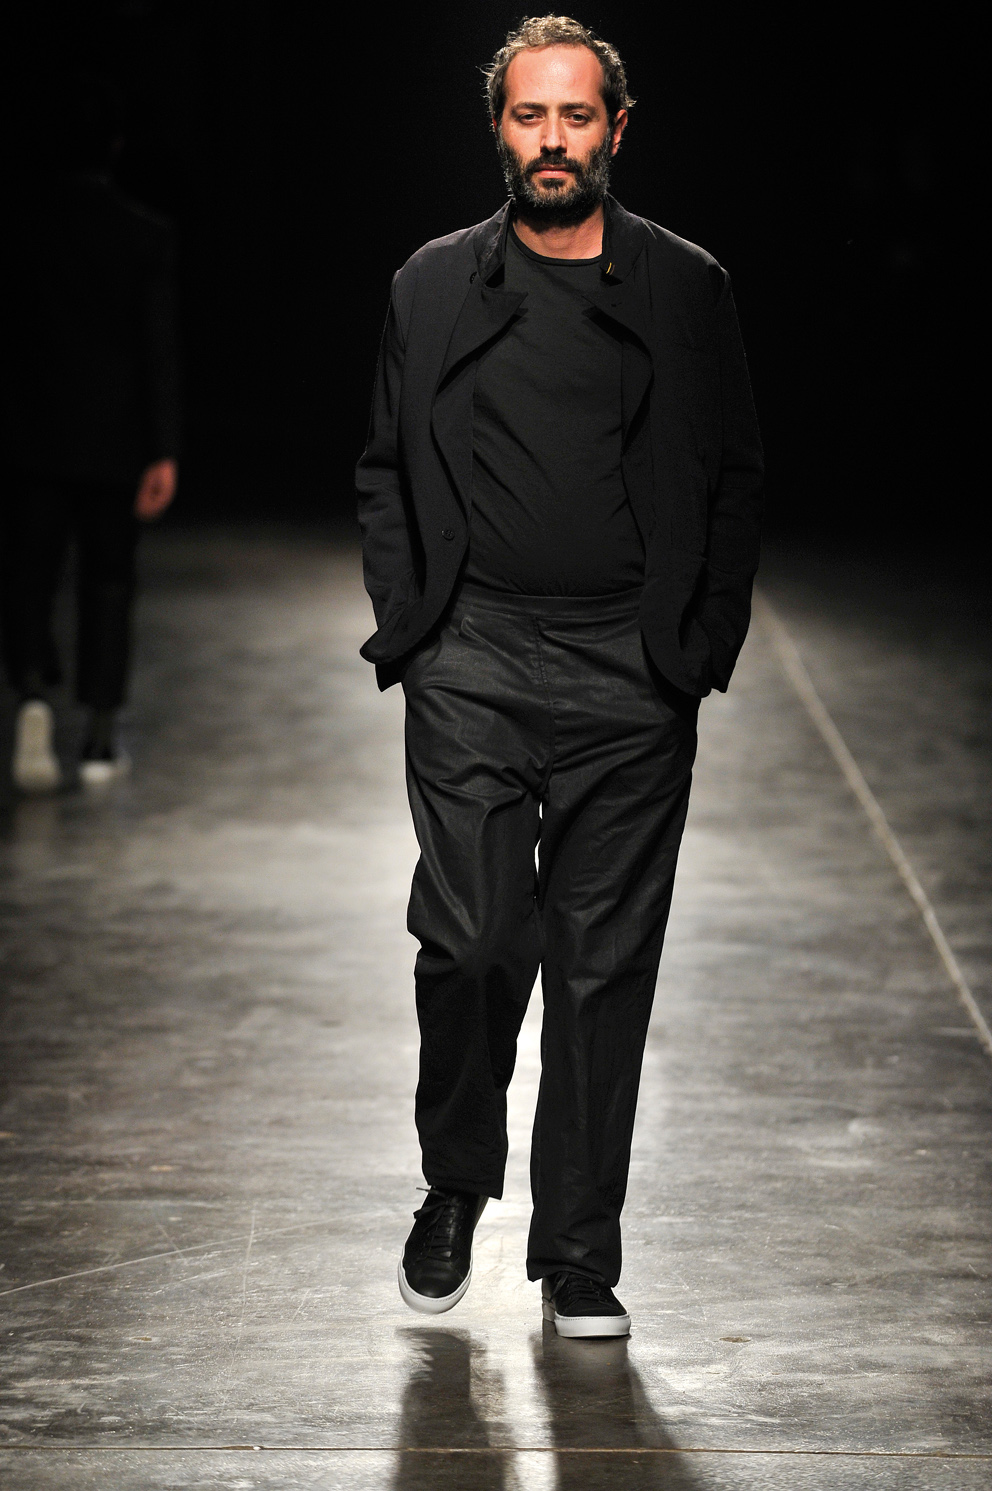 Fabio Quaranta, Autunno/Inverno 2013 Milano Fashion Week